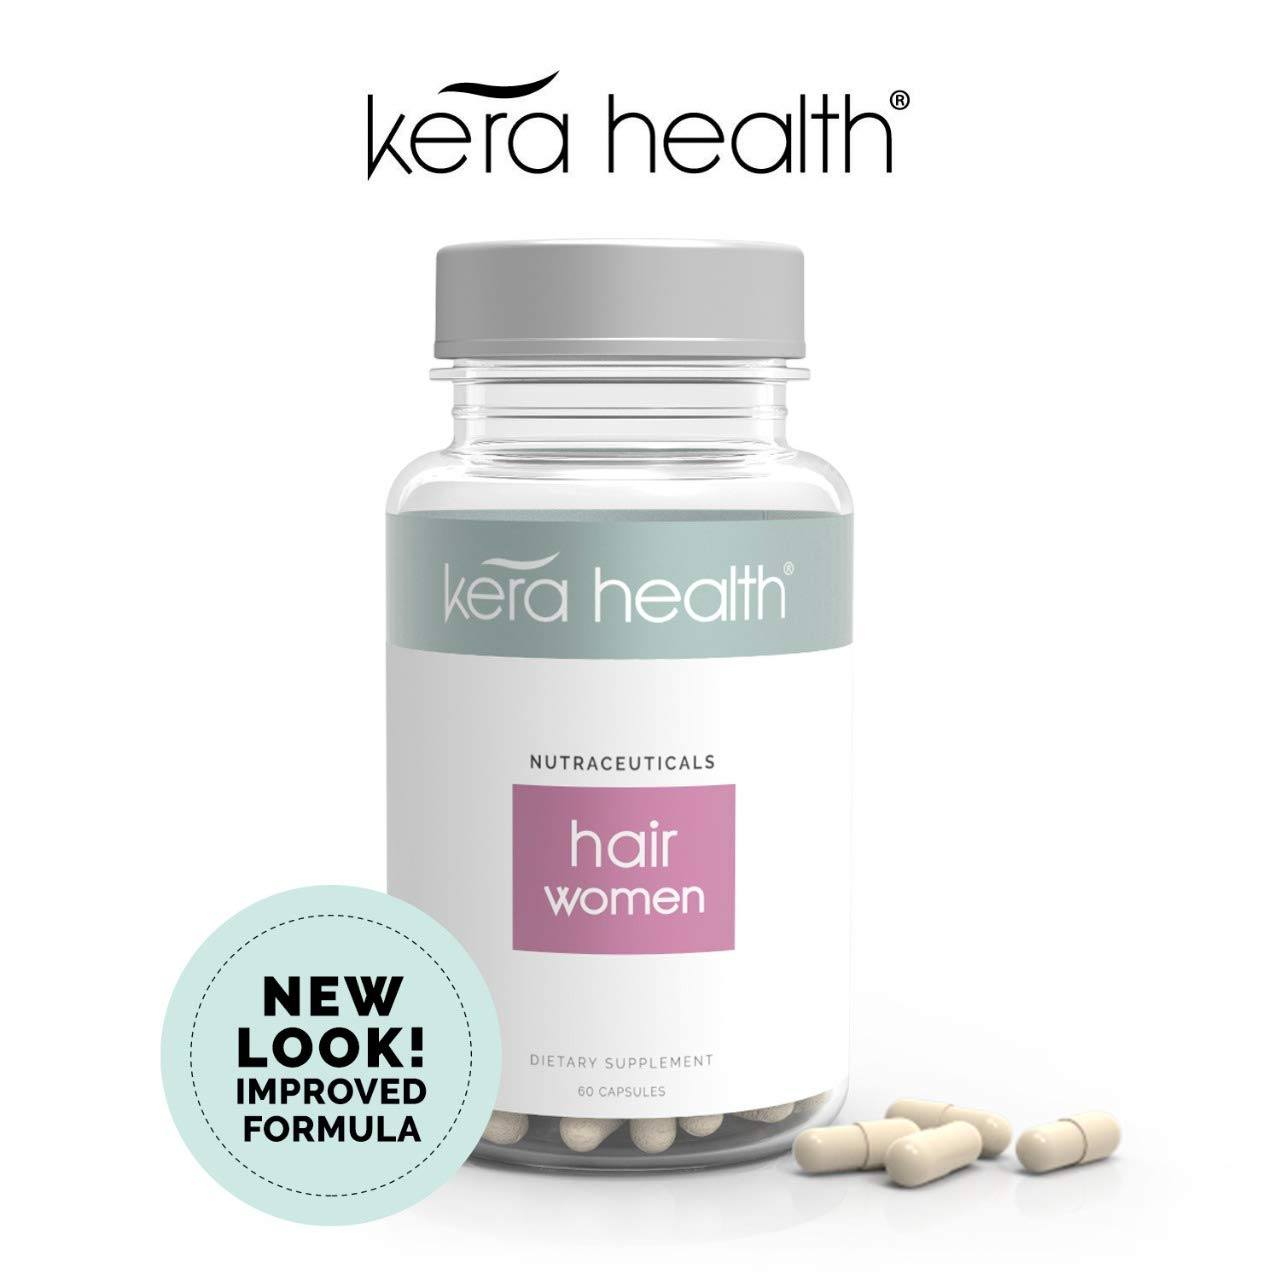 Kerahealth Hair Loss Thinning Vitamin Supplement Treatment Pills For Women With Biotin and Keratin Helps in Hair Growth -Clinically Tested Made With Natural & Safe Ingredients by KeraHealth